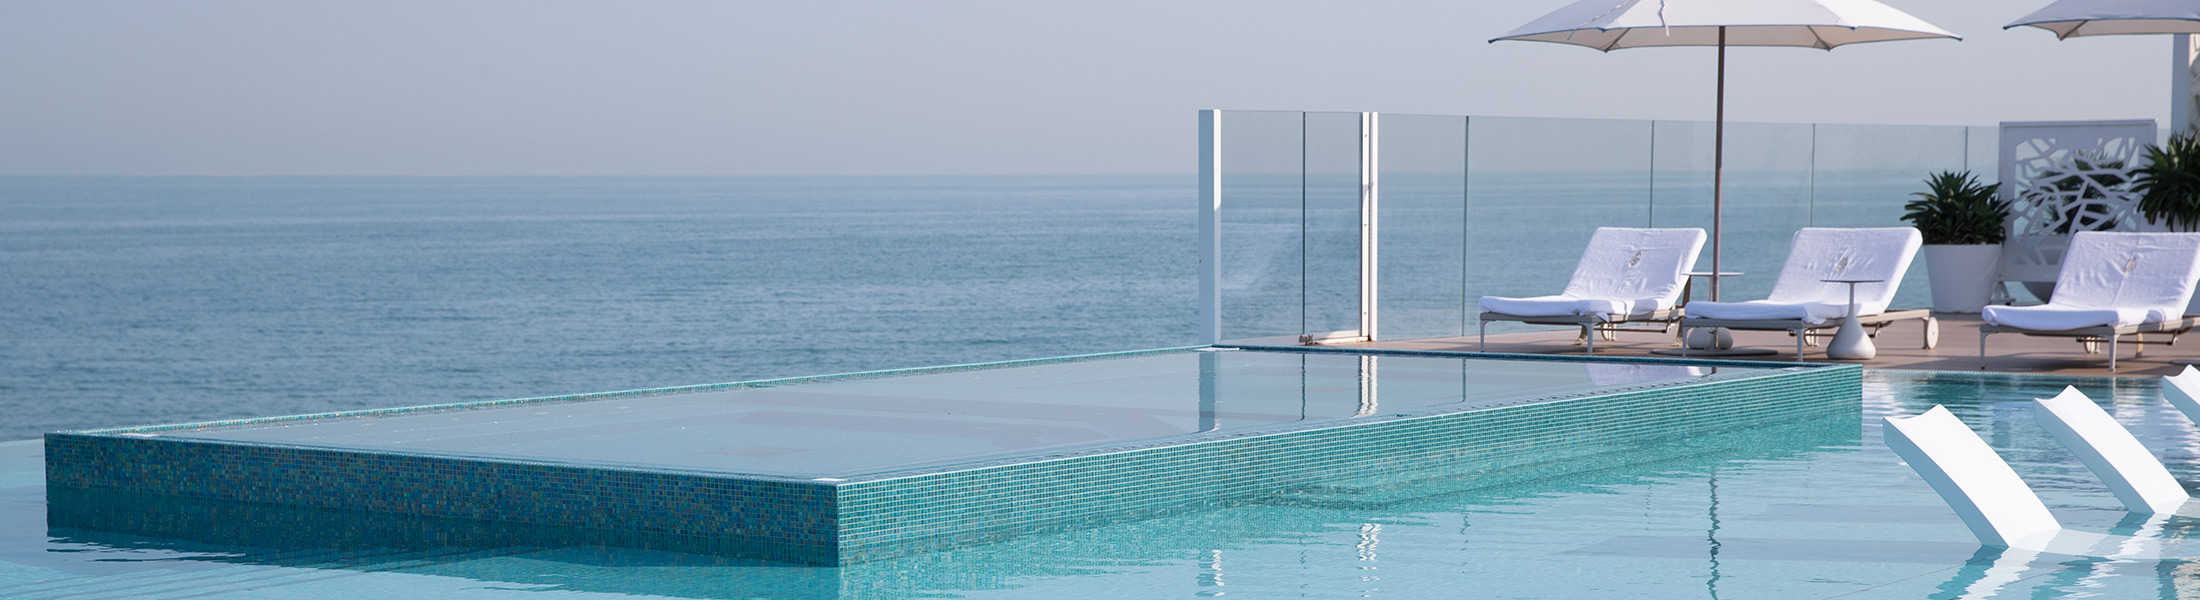 Infinity pool at the Burj Al Arab